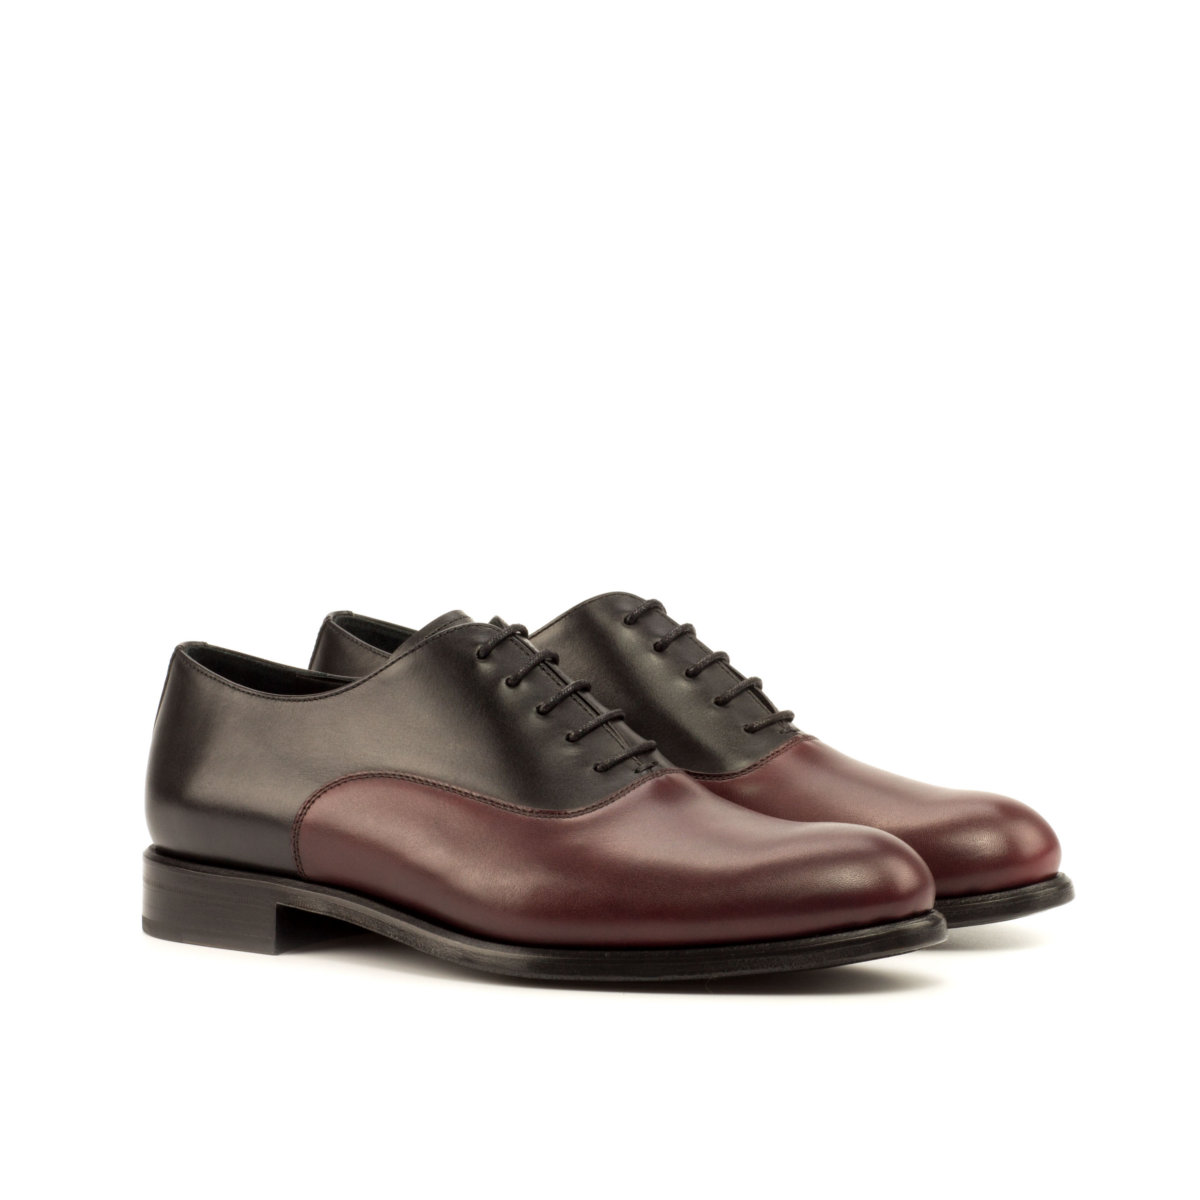 Burgundy and black boxcalf women's shoes